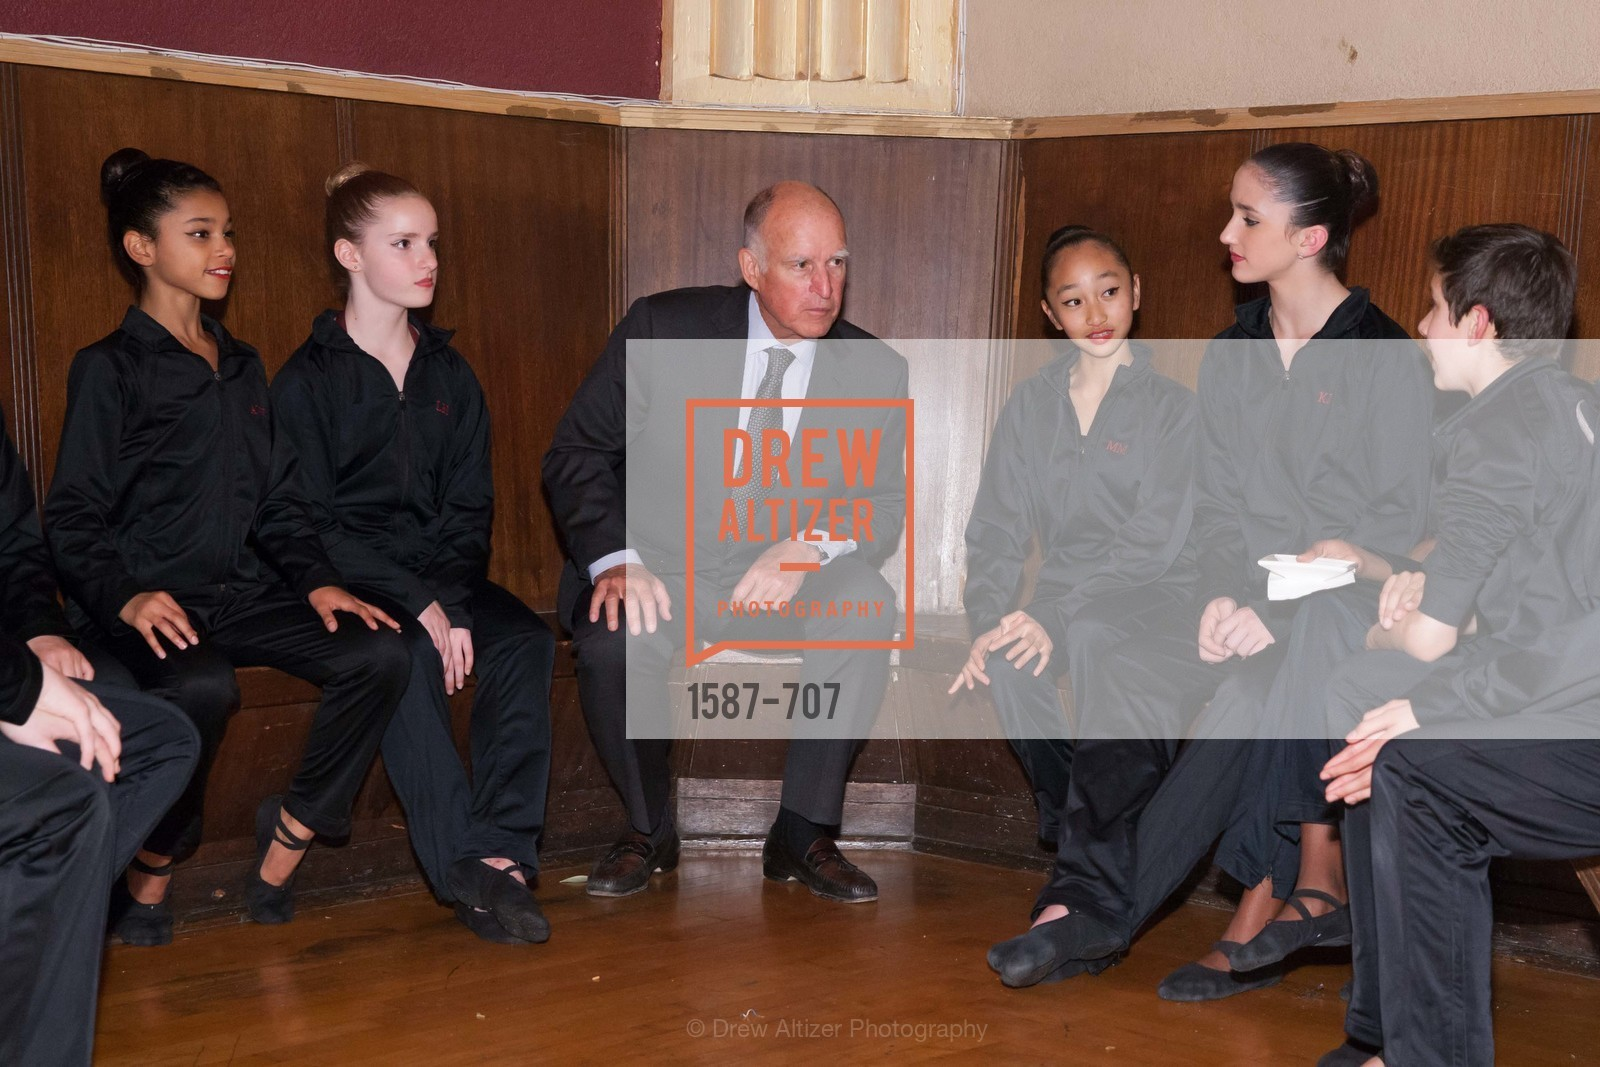 Gov. Jerry Brown, Students, OAKLAND SCHOOL FOR THE ARTS Gala 2015 with Governor Jerry Brown, US, May 8th, 2015,Drew Altizer, Drew Altizer Photography, full-service agency, private events, San Francisco photographer, photographer california